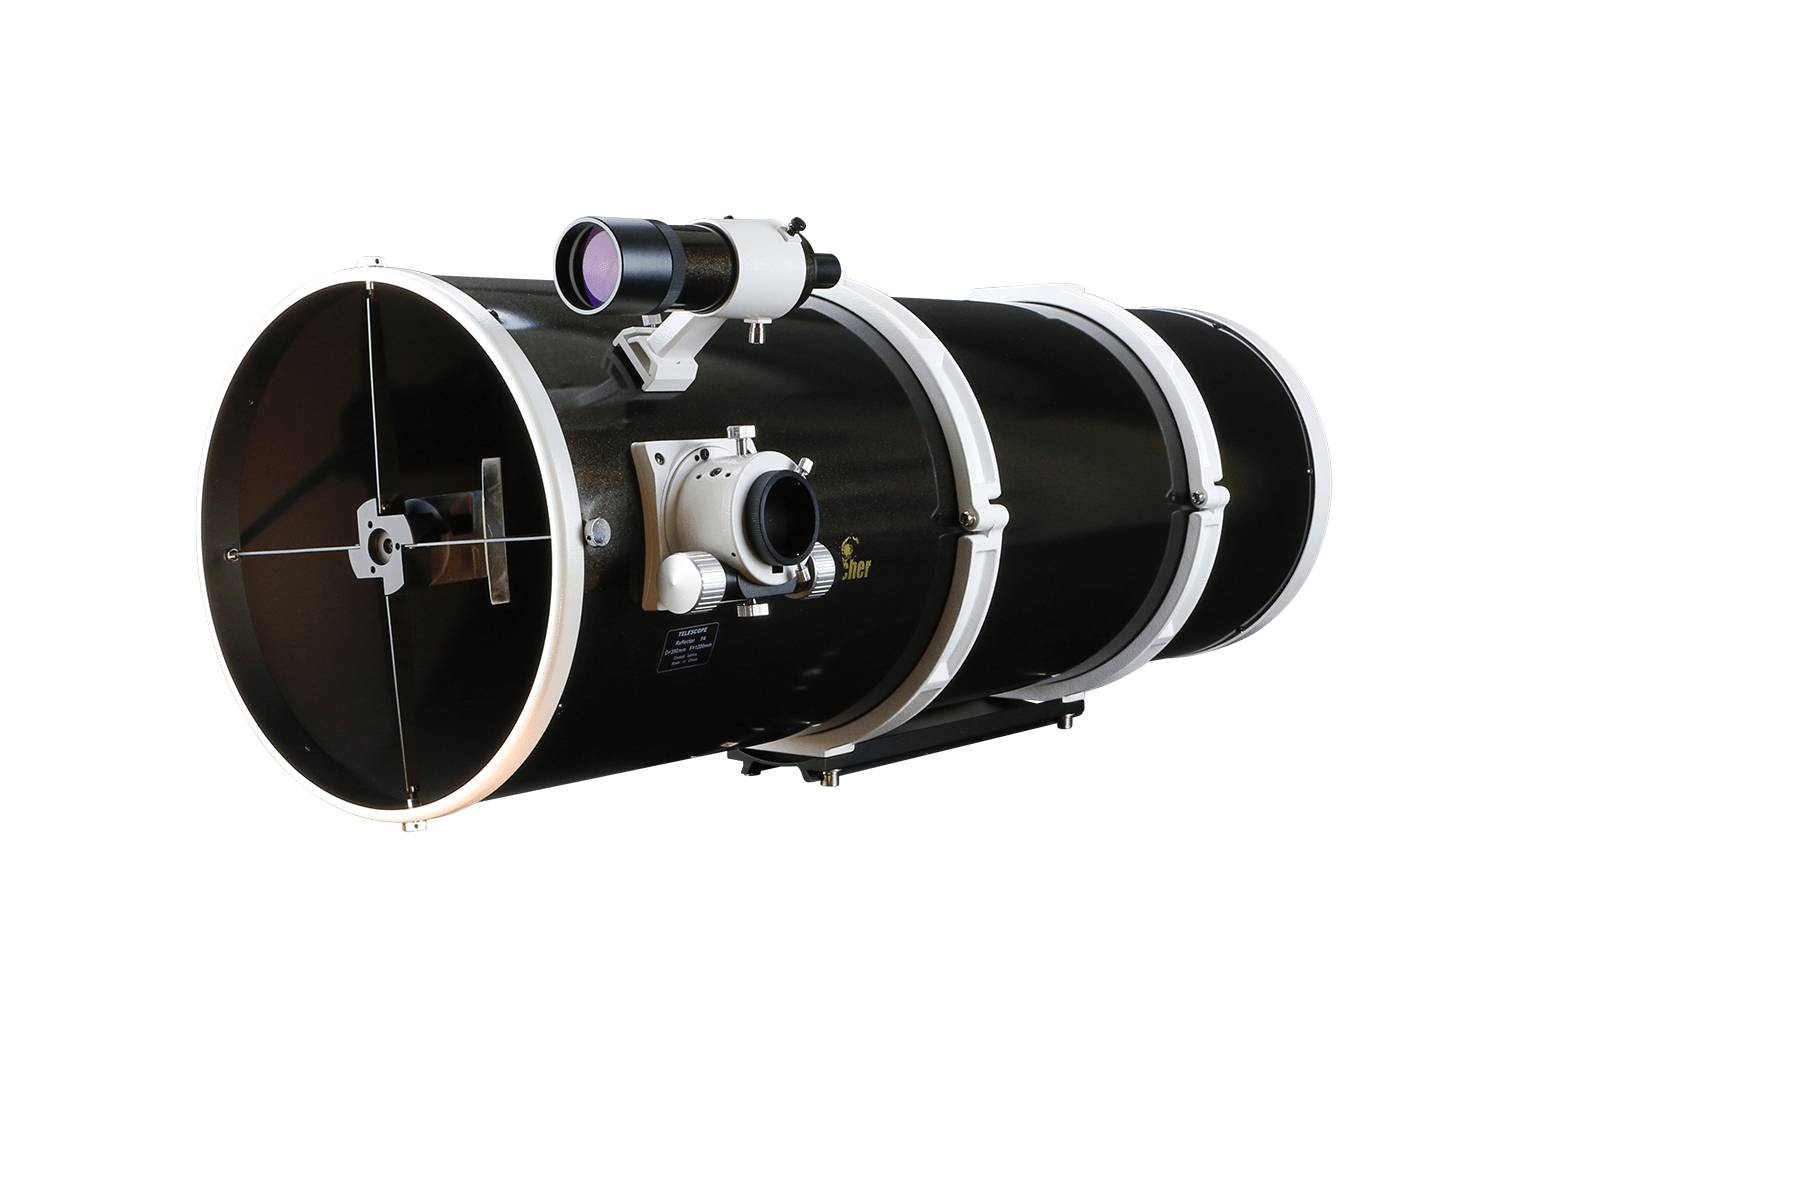 Tubo Newton Quattro 12S 300/1200 Skywatcher Wide Photo OTA